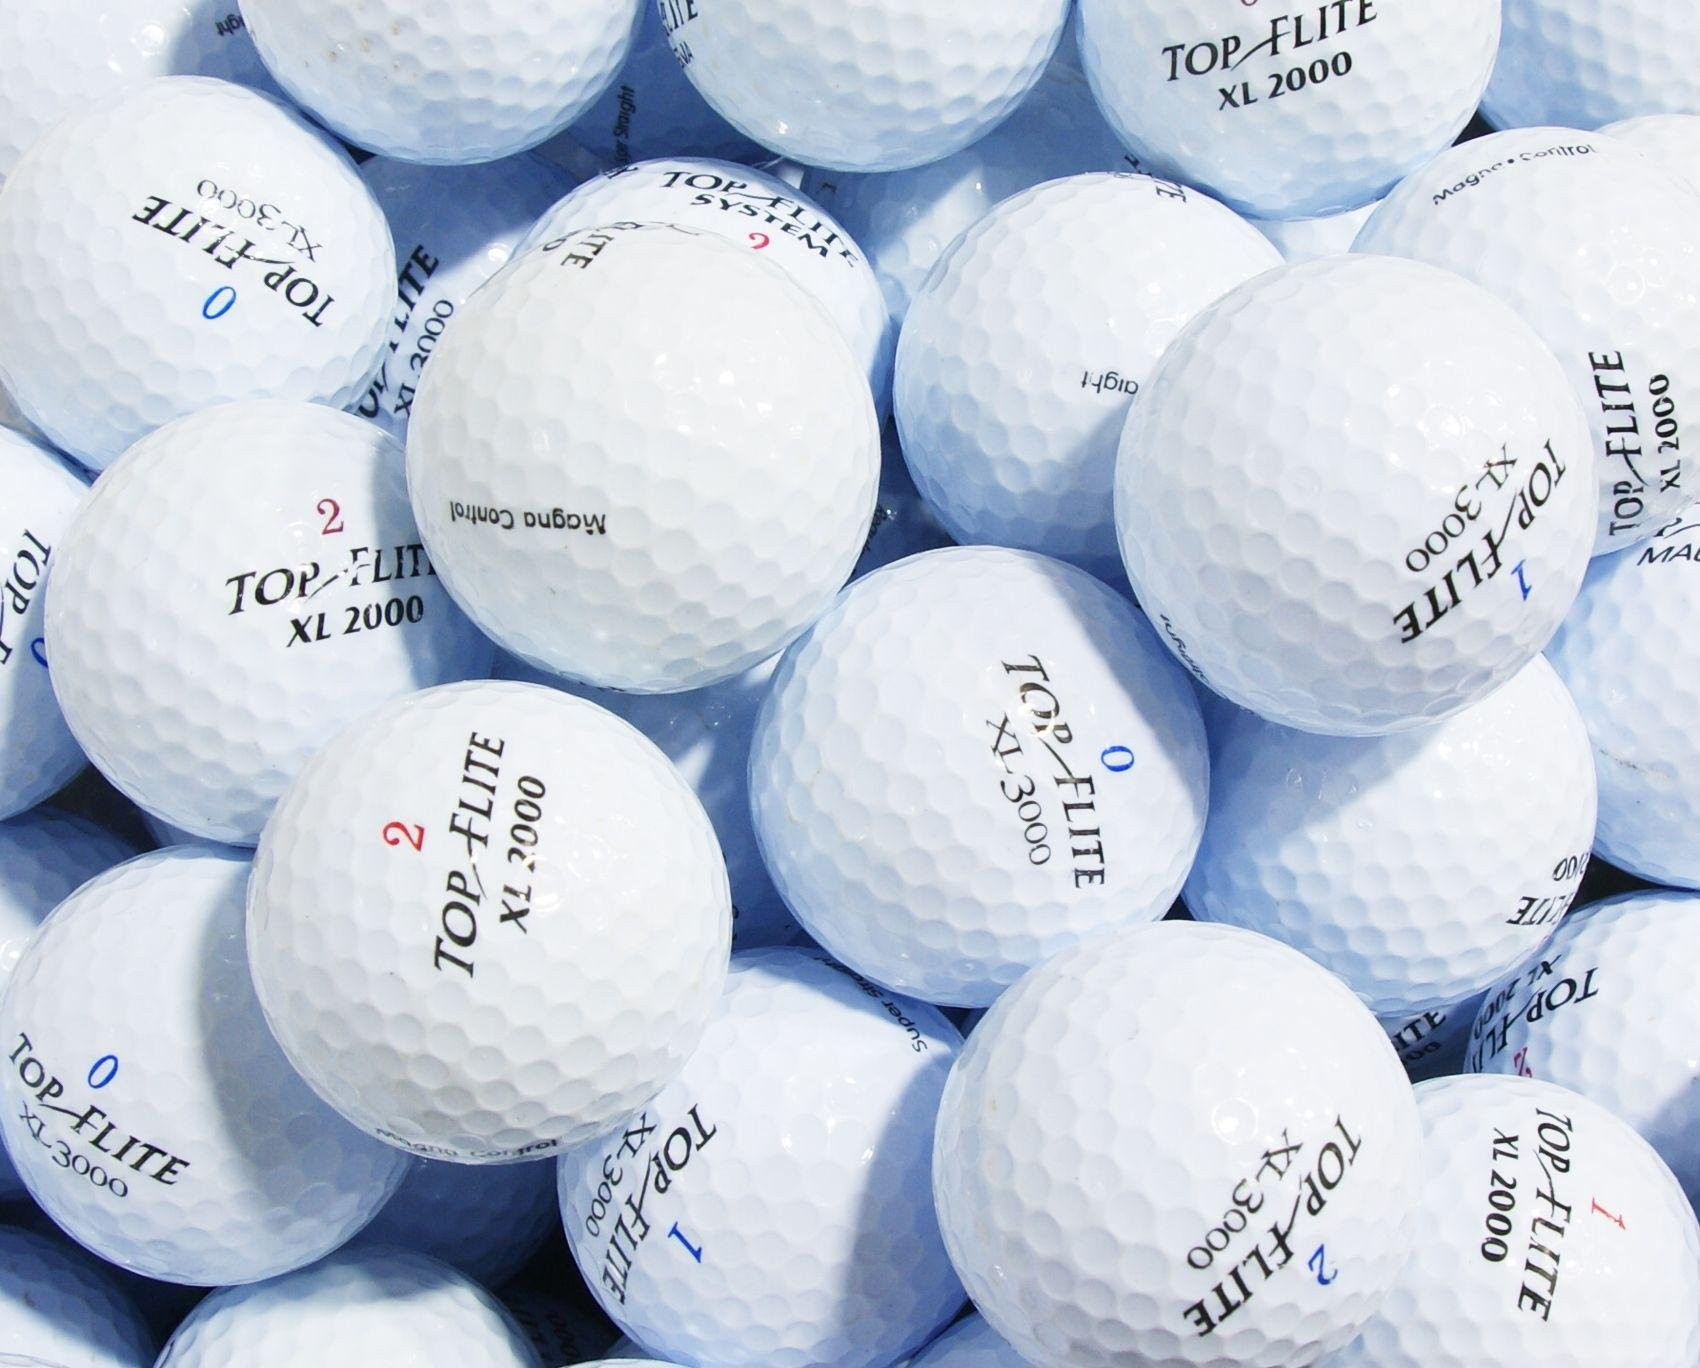 Top Flite - 100 - Golf Lake Balls in a Box